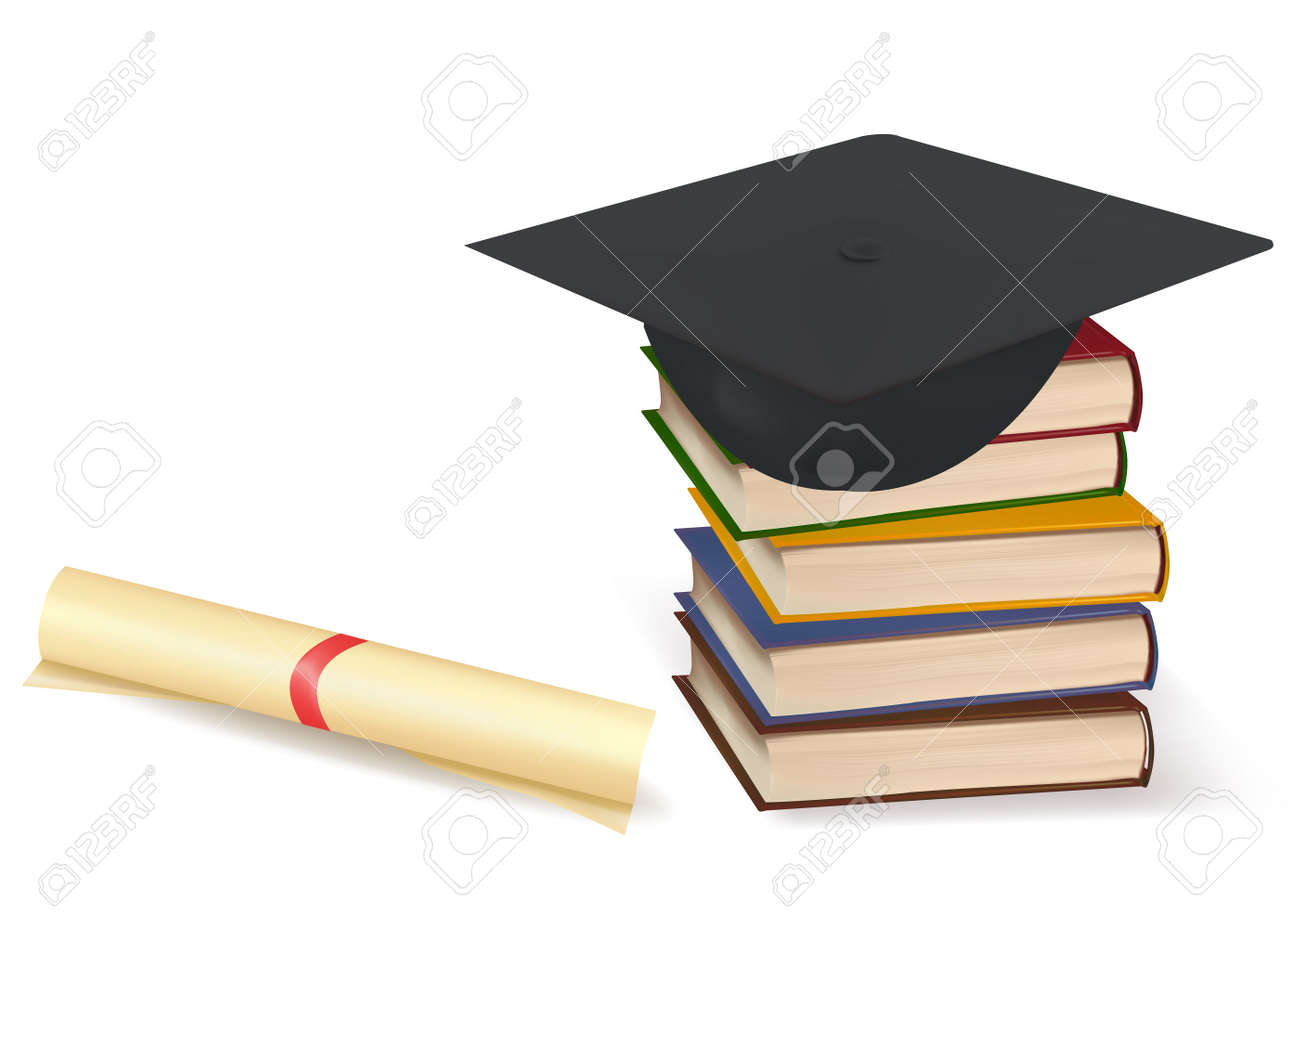 Graduation cap and diploma laying on stacks of books Stock Vector - 8969508